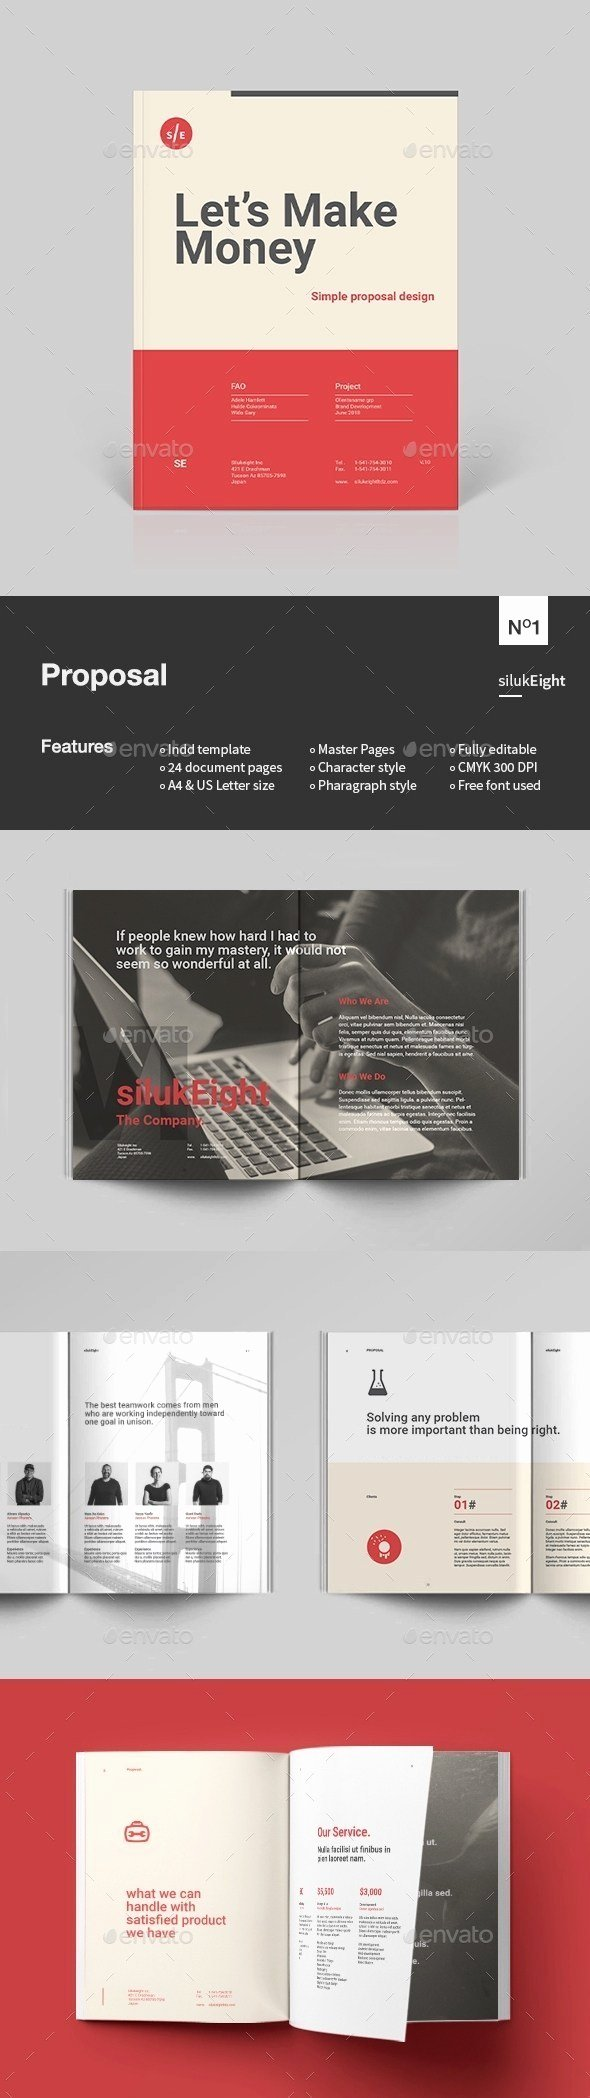 Indesign Business Plan Template Inspirational 30 Indesign Business Proposal Templates